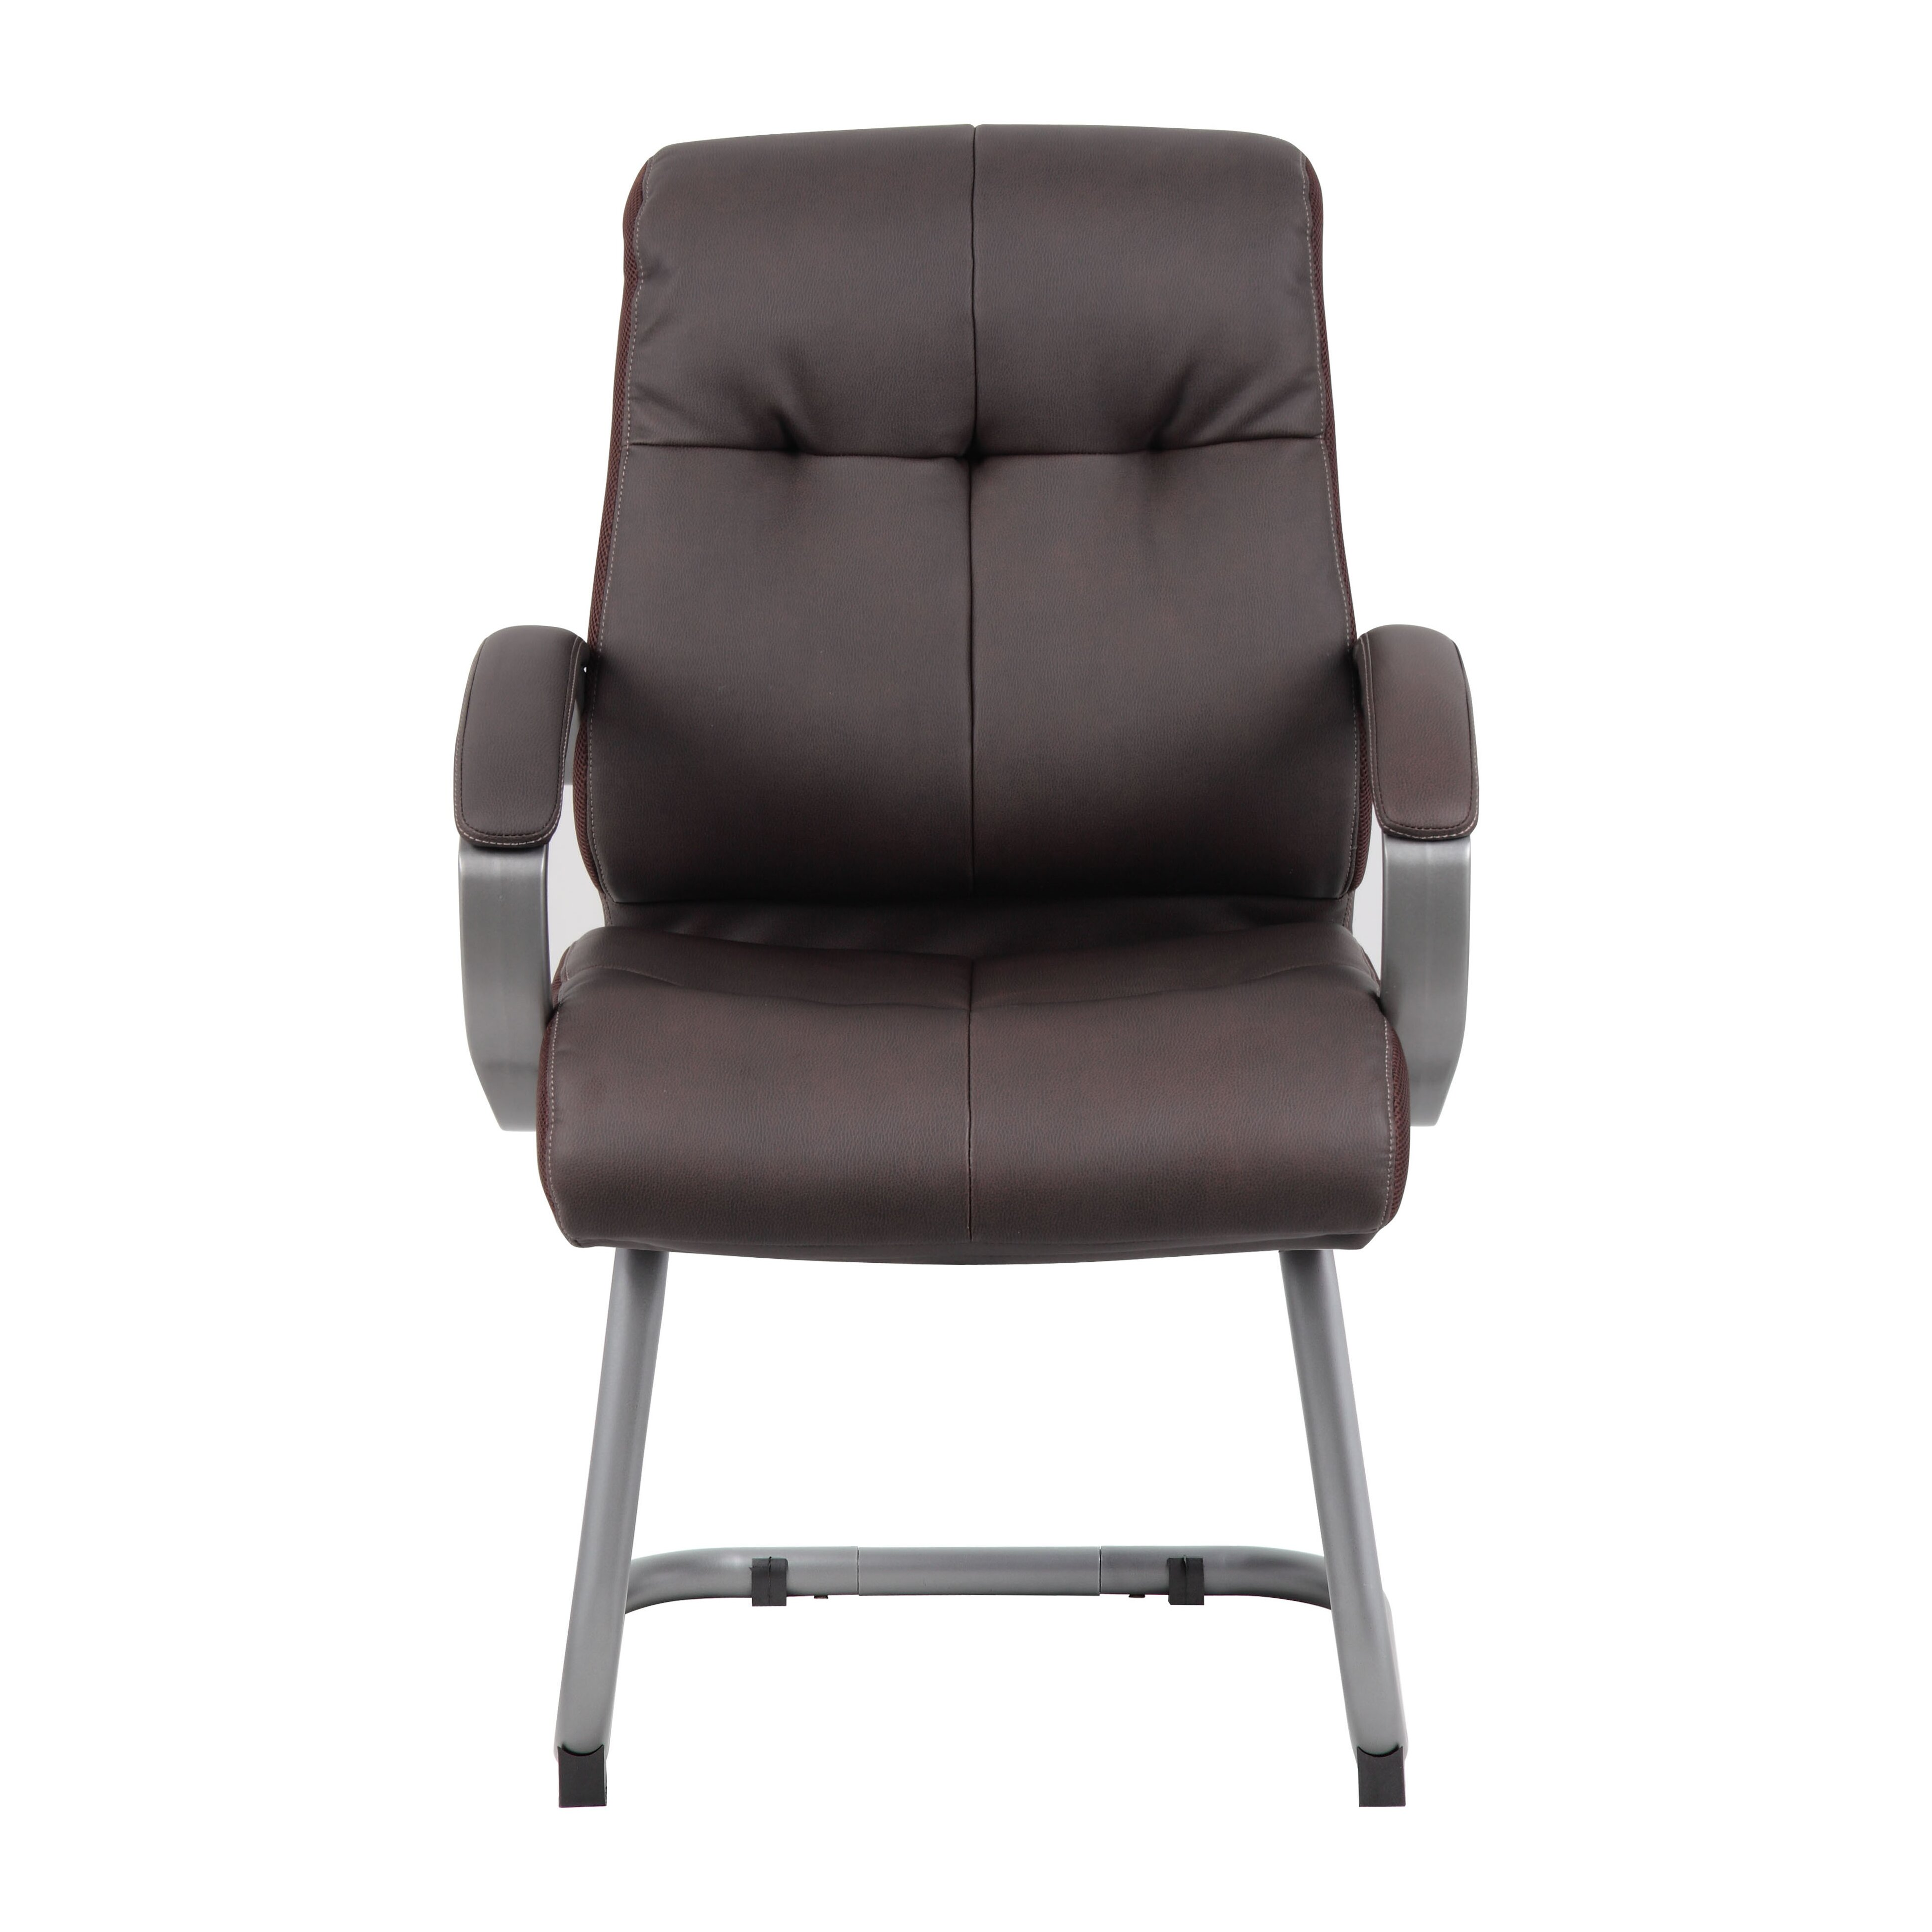 by industry reception seating boss office products sku bop1616